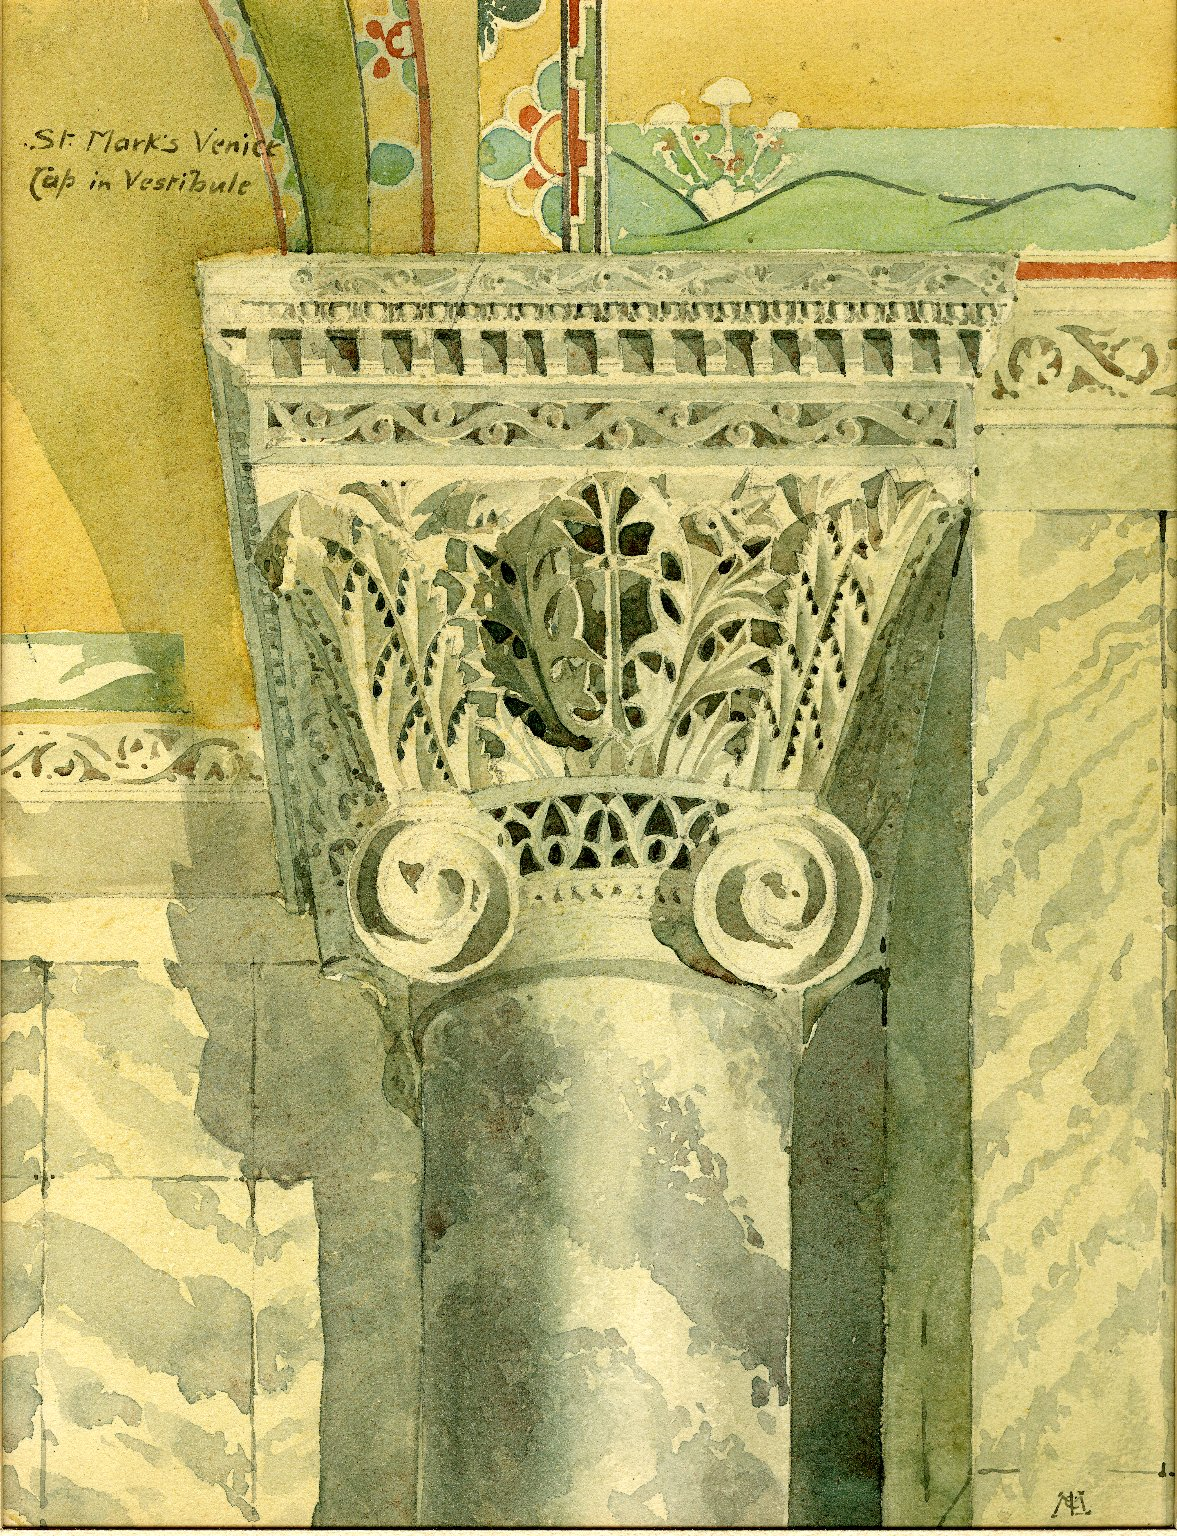 Capital of column at St. Mark's Basilica